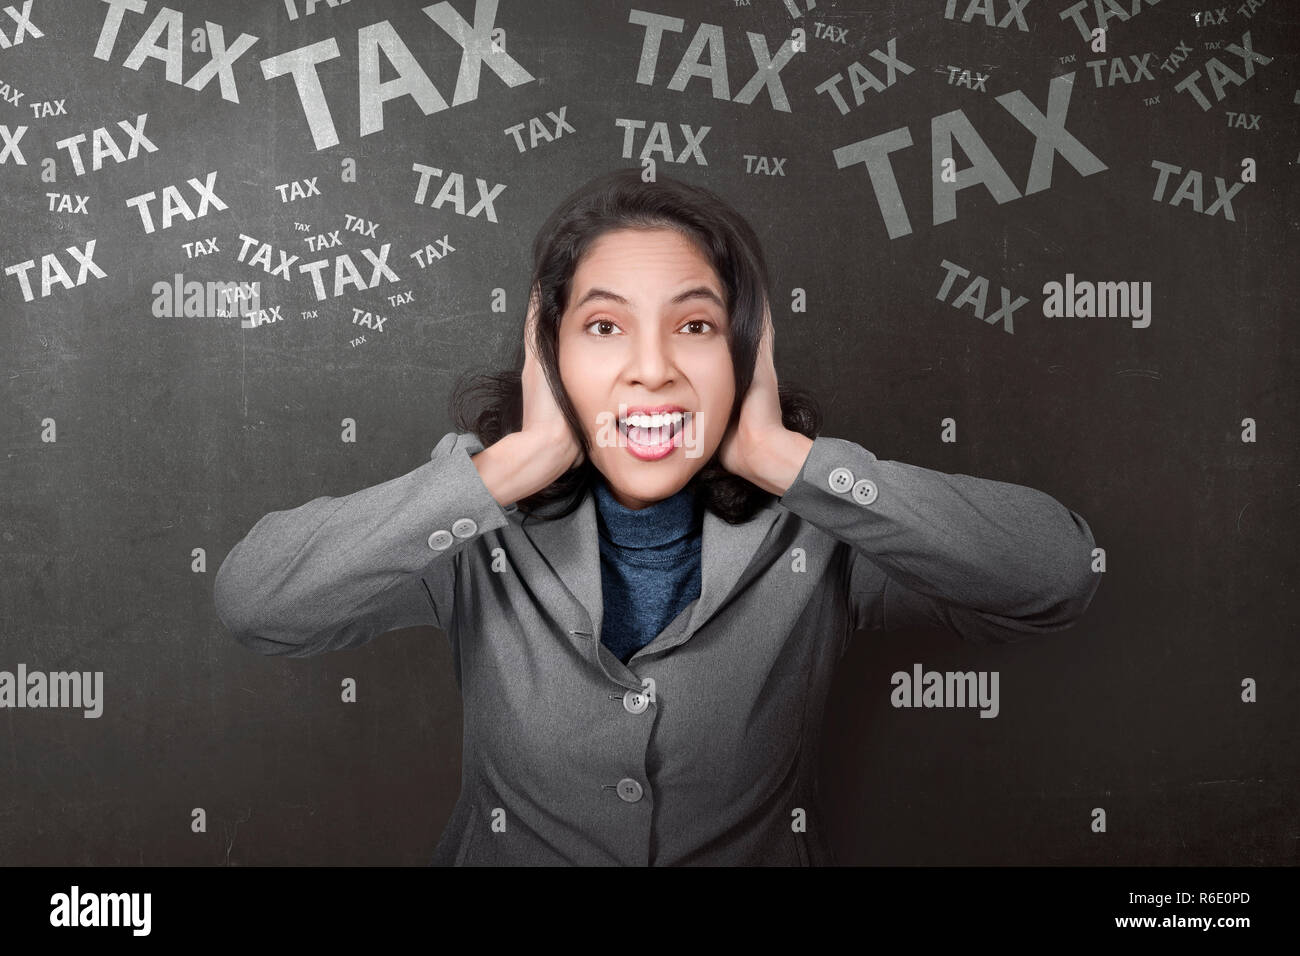 Stressful asian businesswoman with tax sign - Stock Image